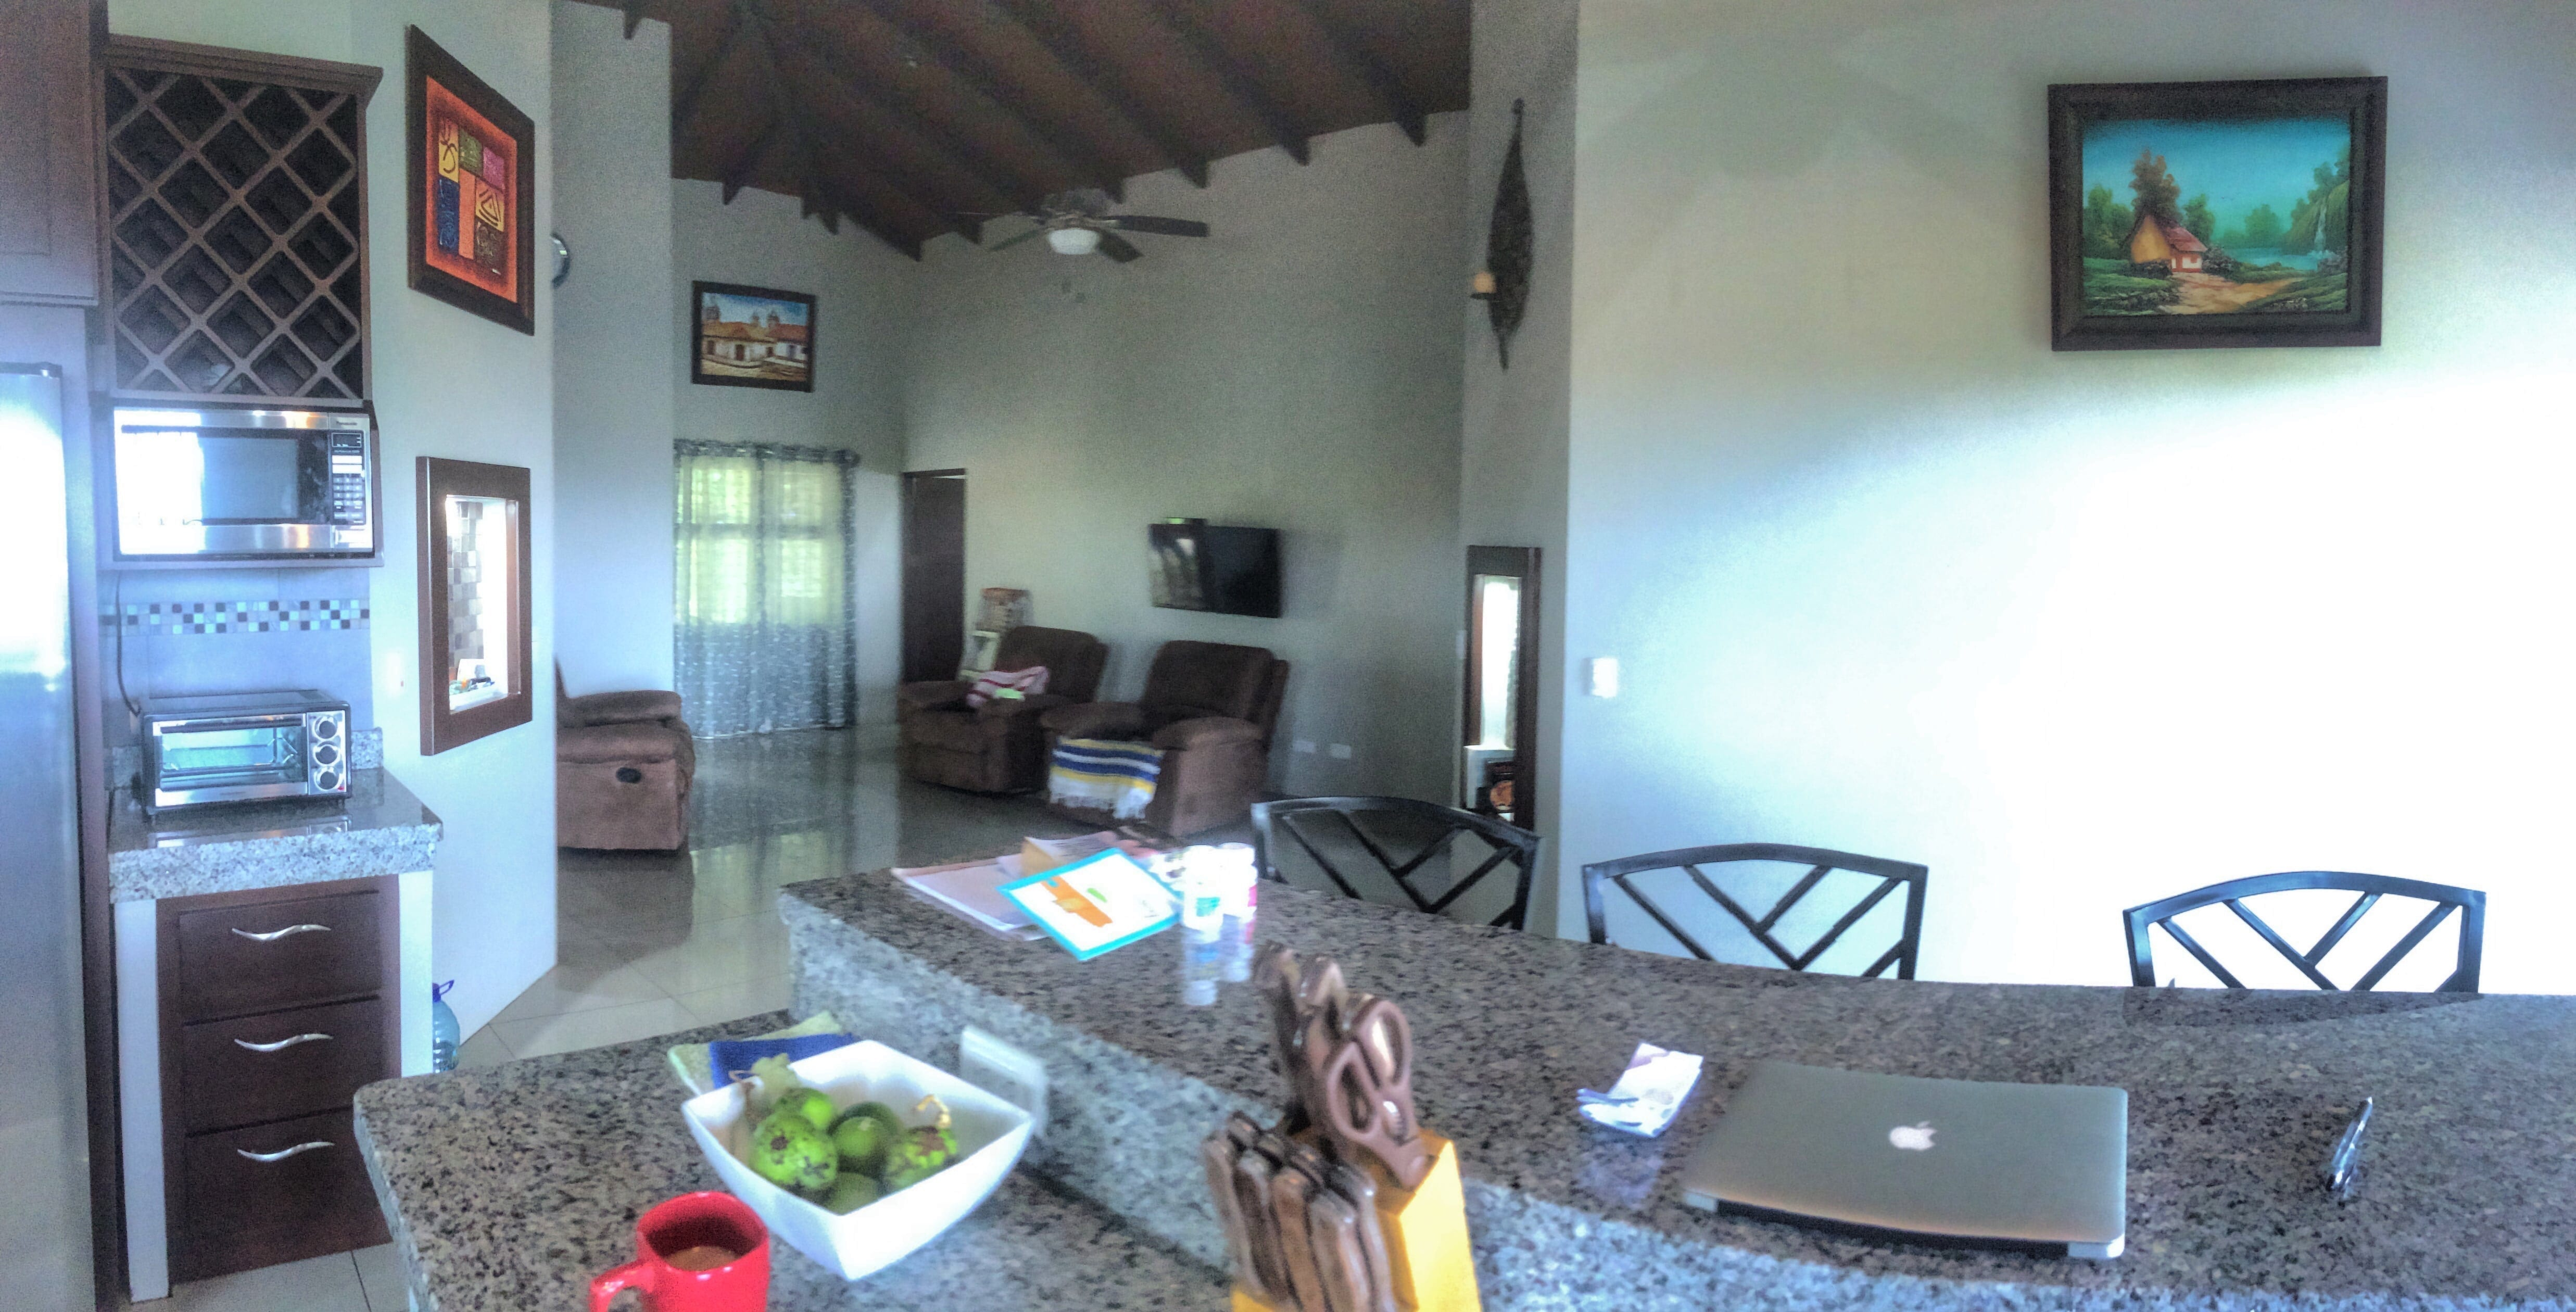 9.4 ACRE - 2Bedr. Home, BBQ Lounge, Shed, Horse Corrals, Fruit Trees, Creek, Ocean &Mountain Views!!